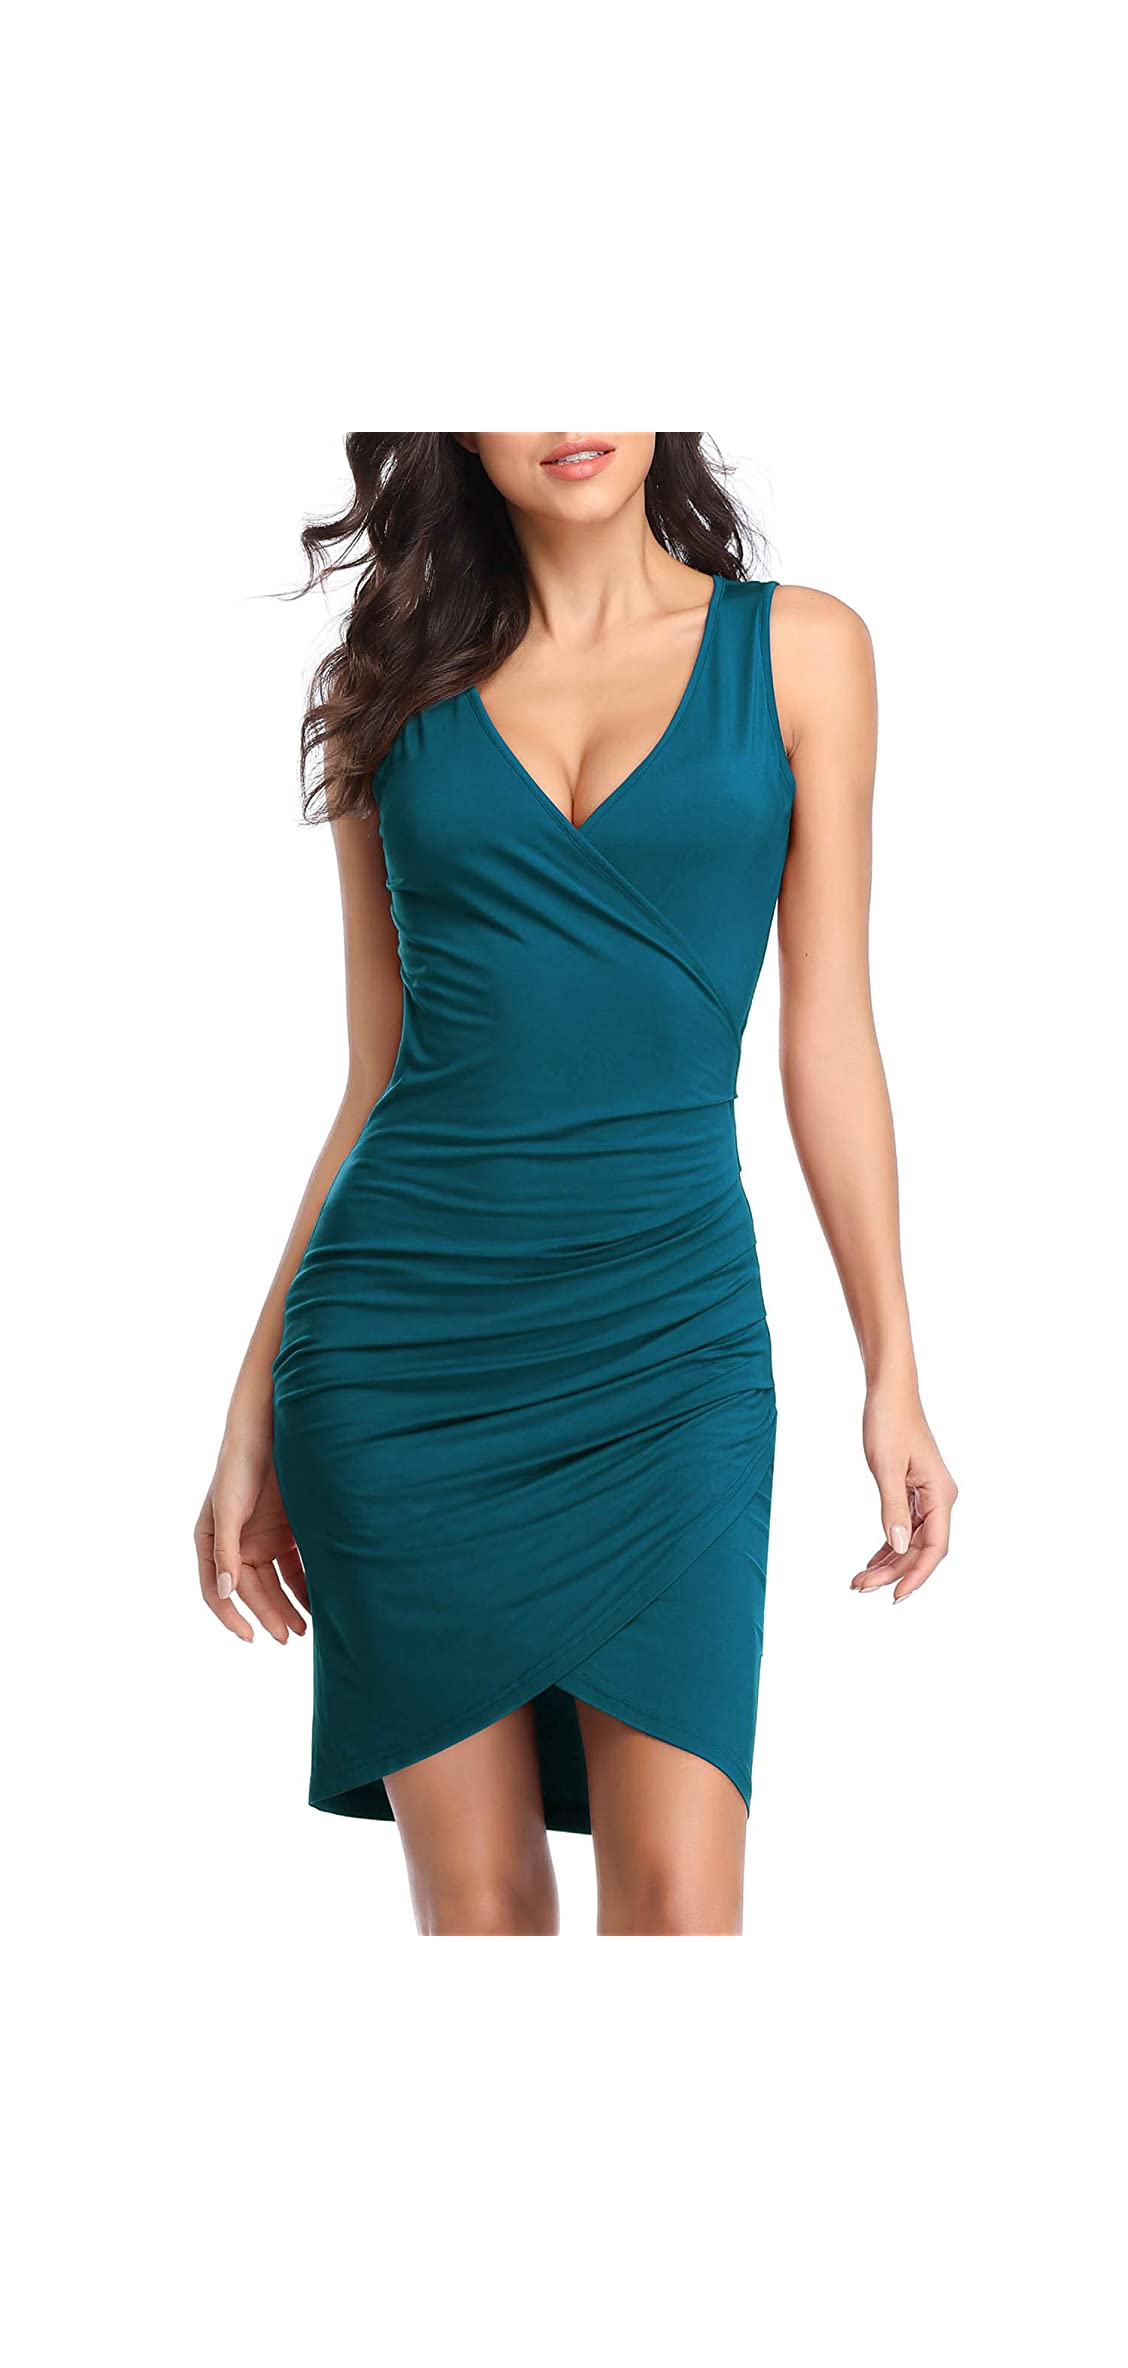 Women's Sleeveless Deep V Neck Wrap Ruched Bodycon Party